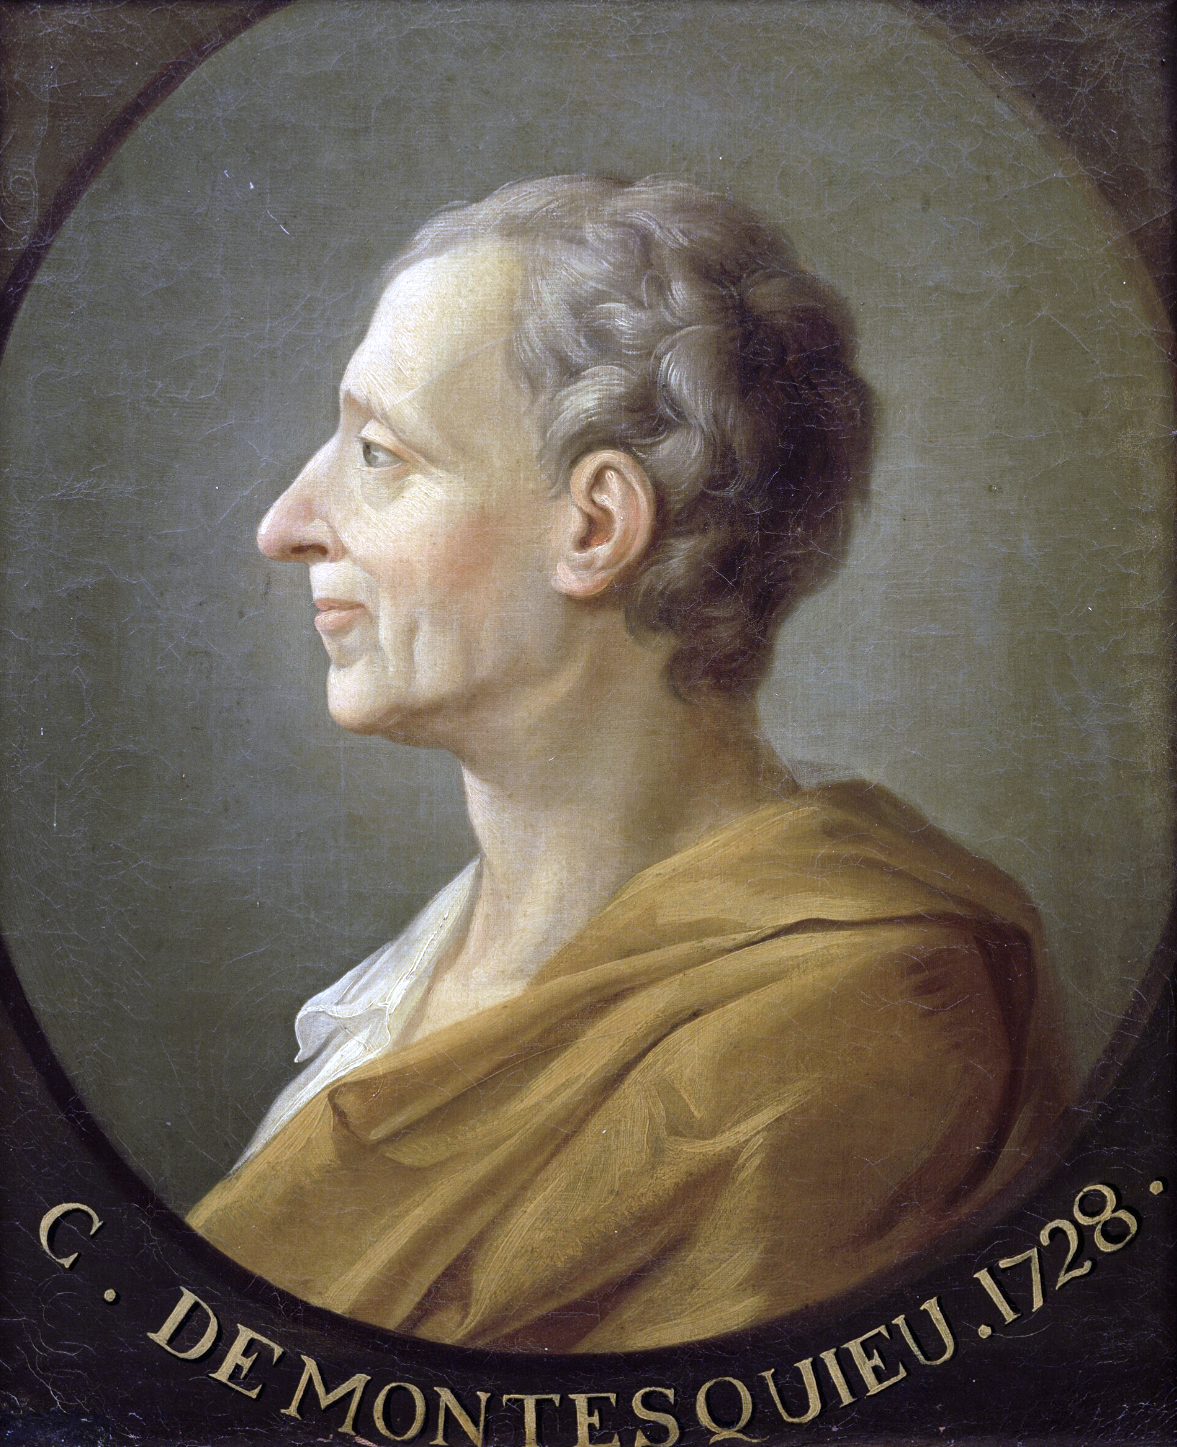 http://upload.wikimedia.org/wikipedia/commons/f/fc/Montesquieu_1.png